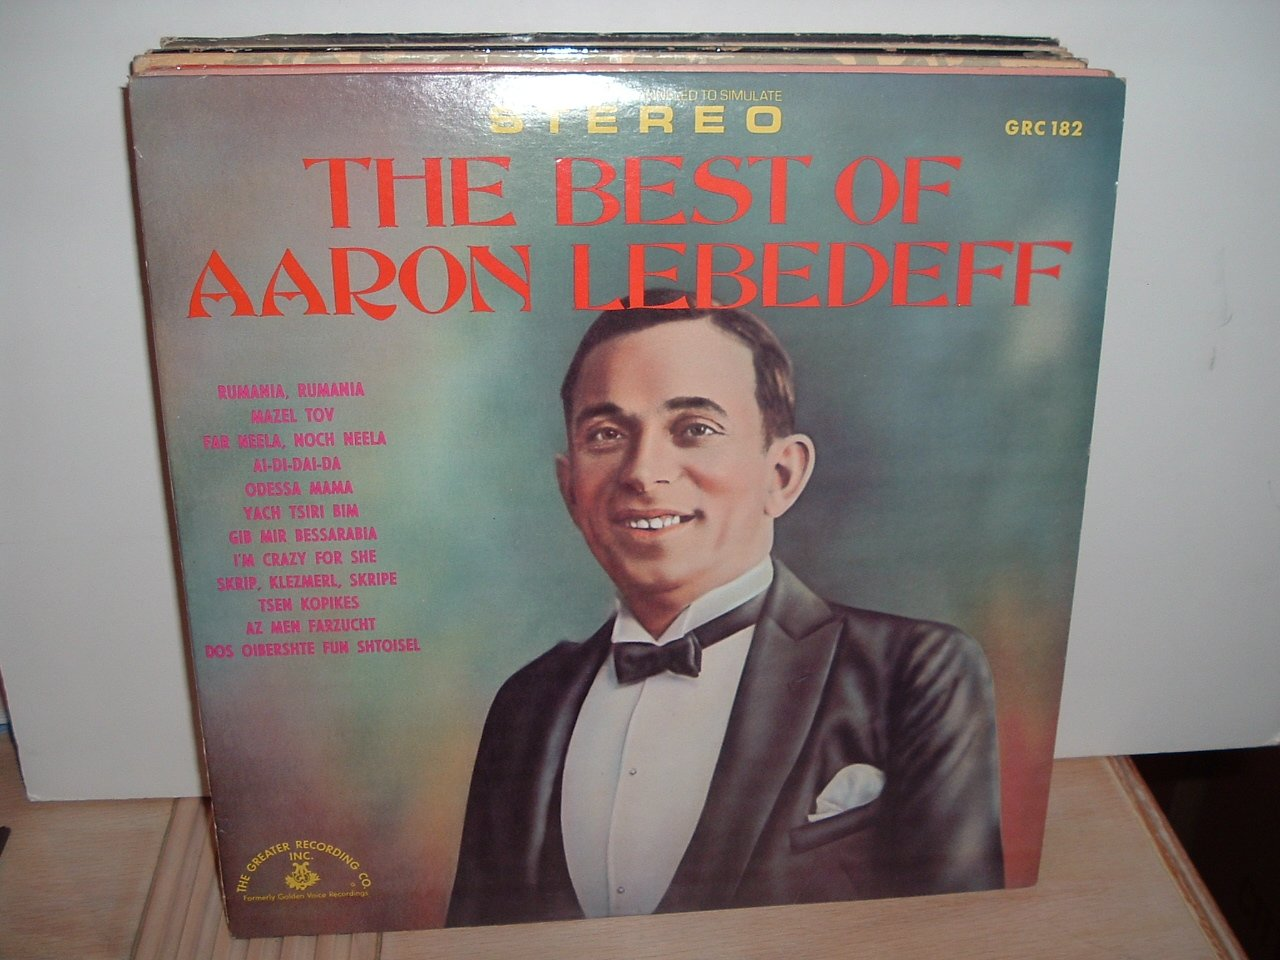 The Best Of Aaron Lebedeff - Yiddish selections - rare 1970 Greater Recording Co. vinyl LP